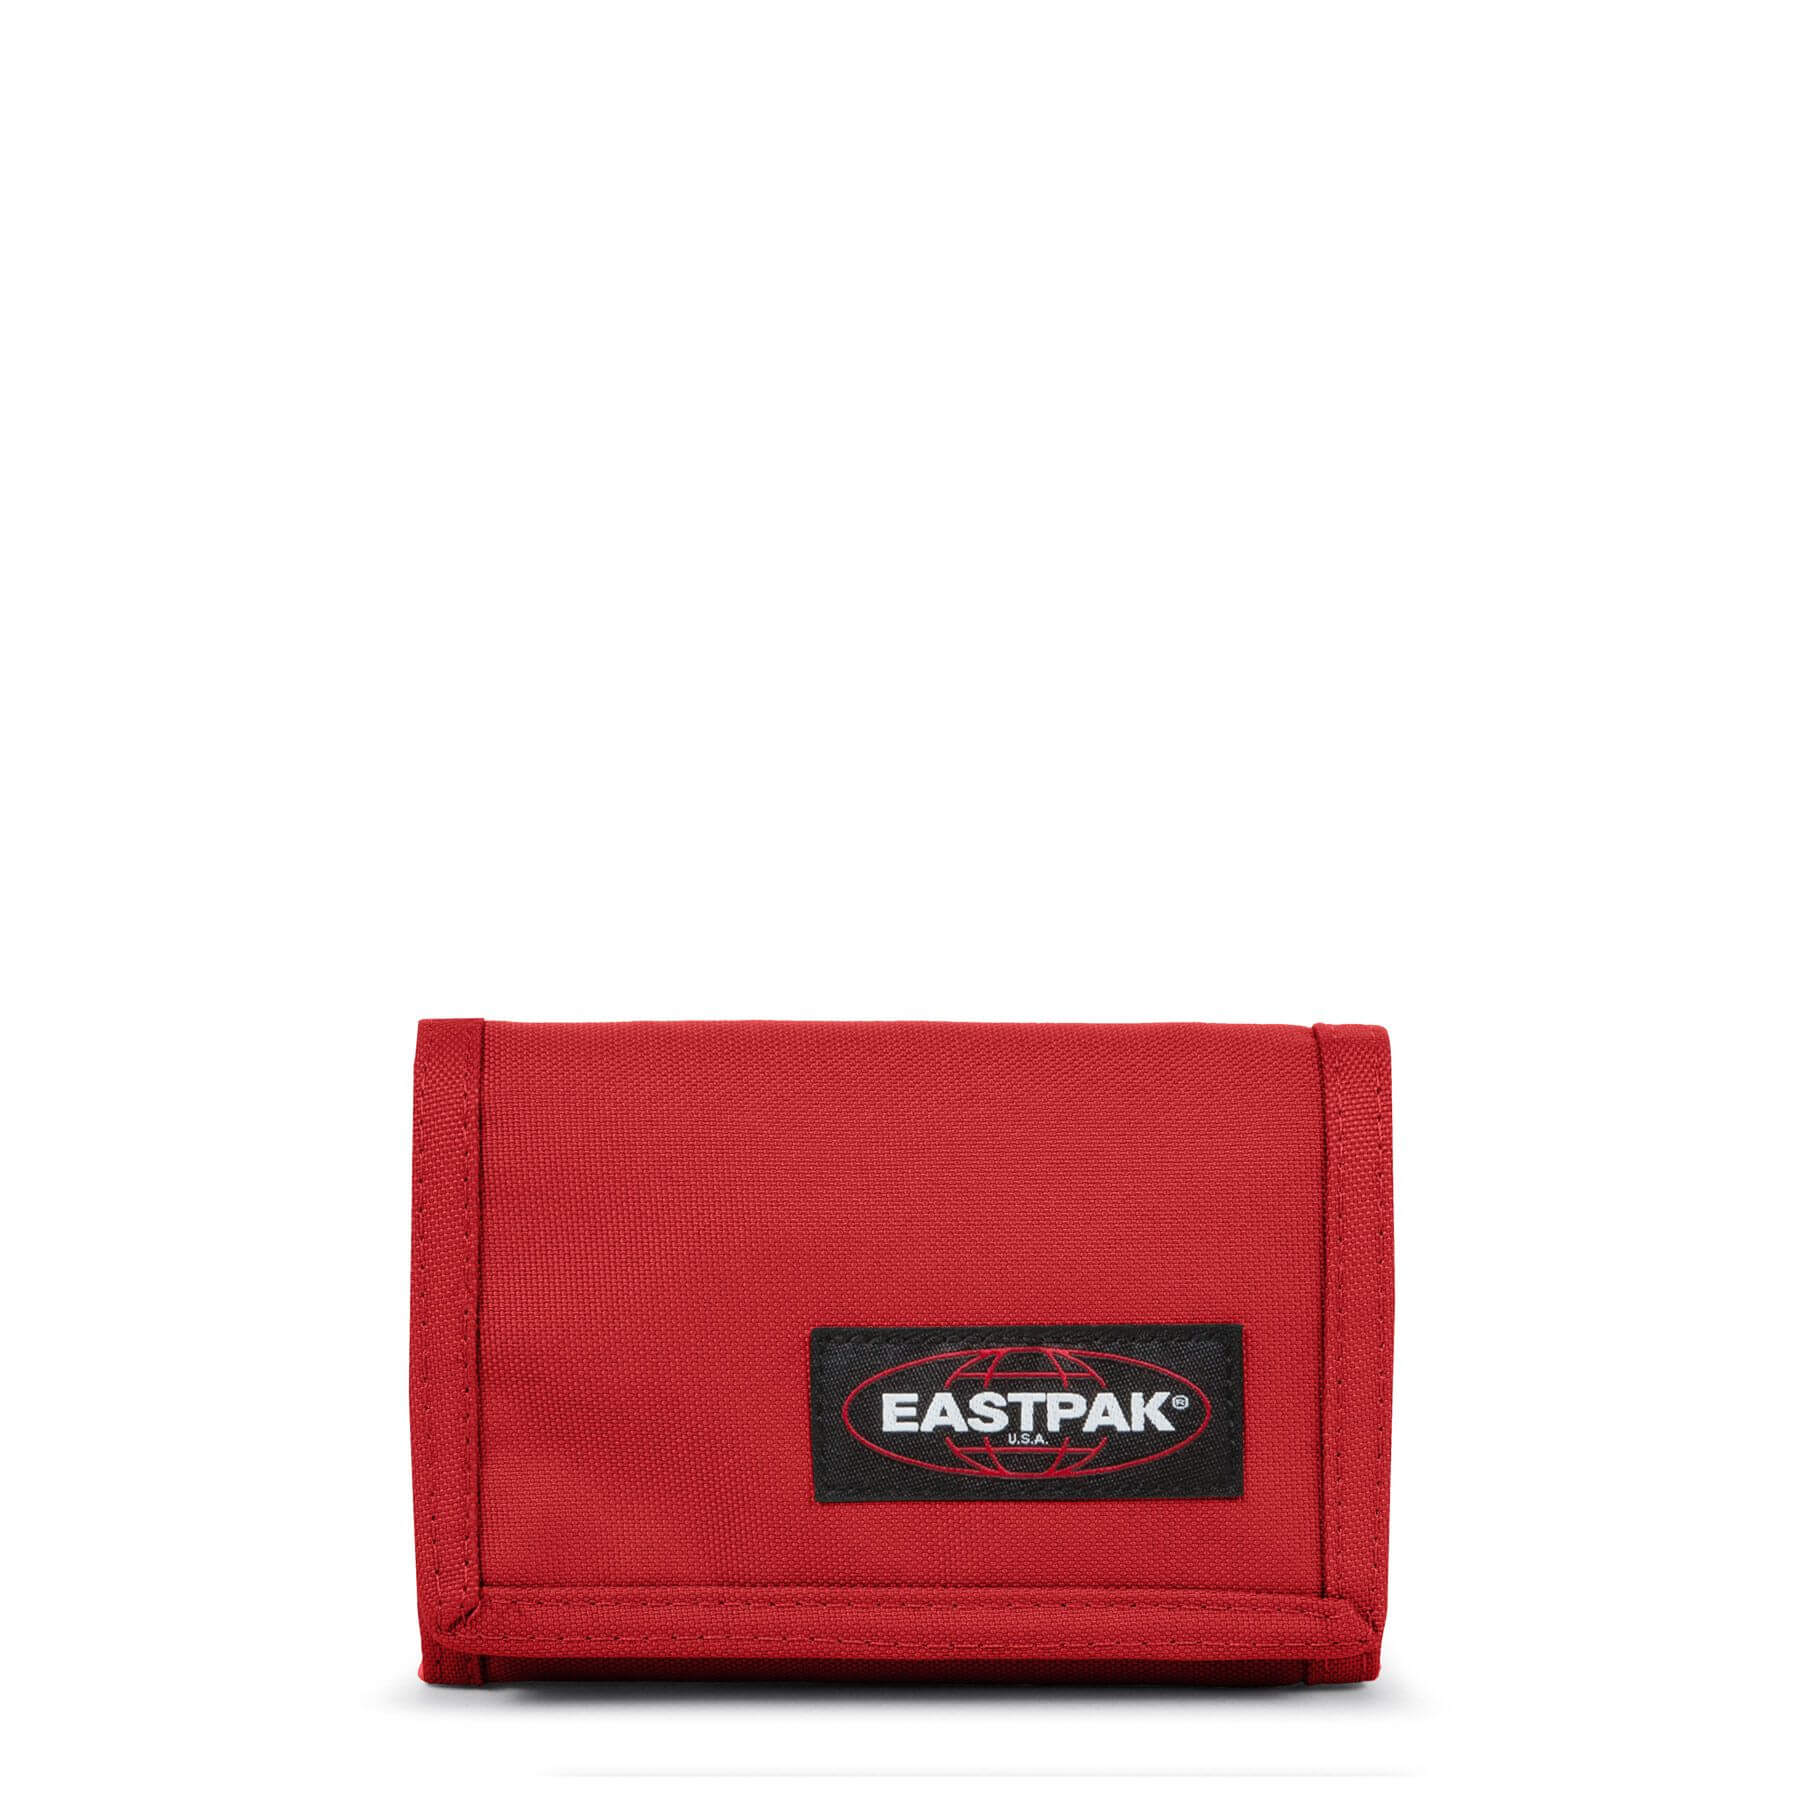 Eastpak Crew Portemonnee met Klittenbandsluitting Apple Pick Red